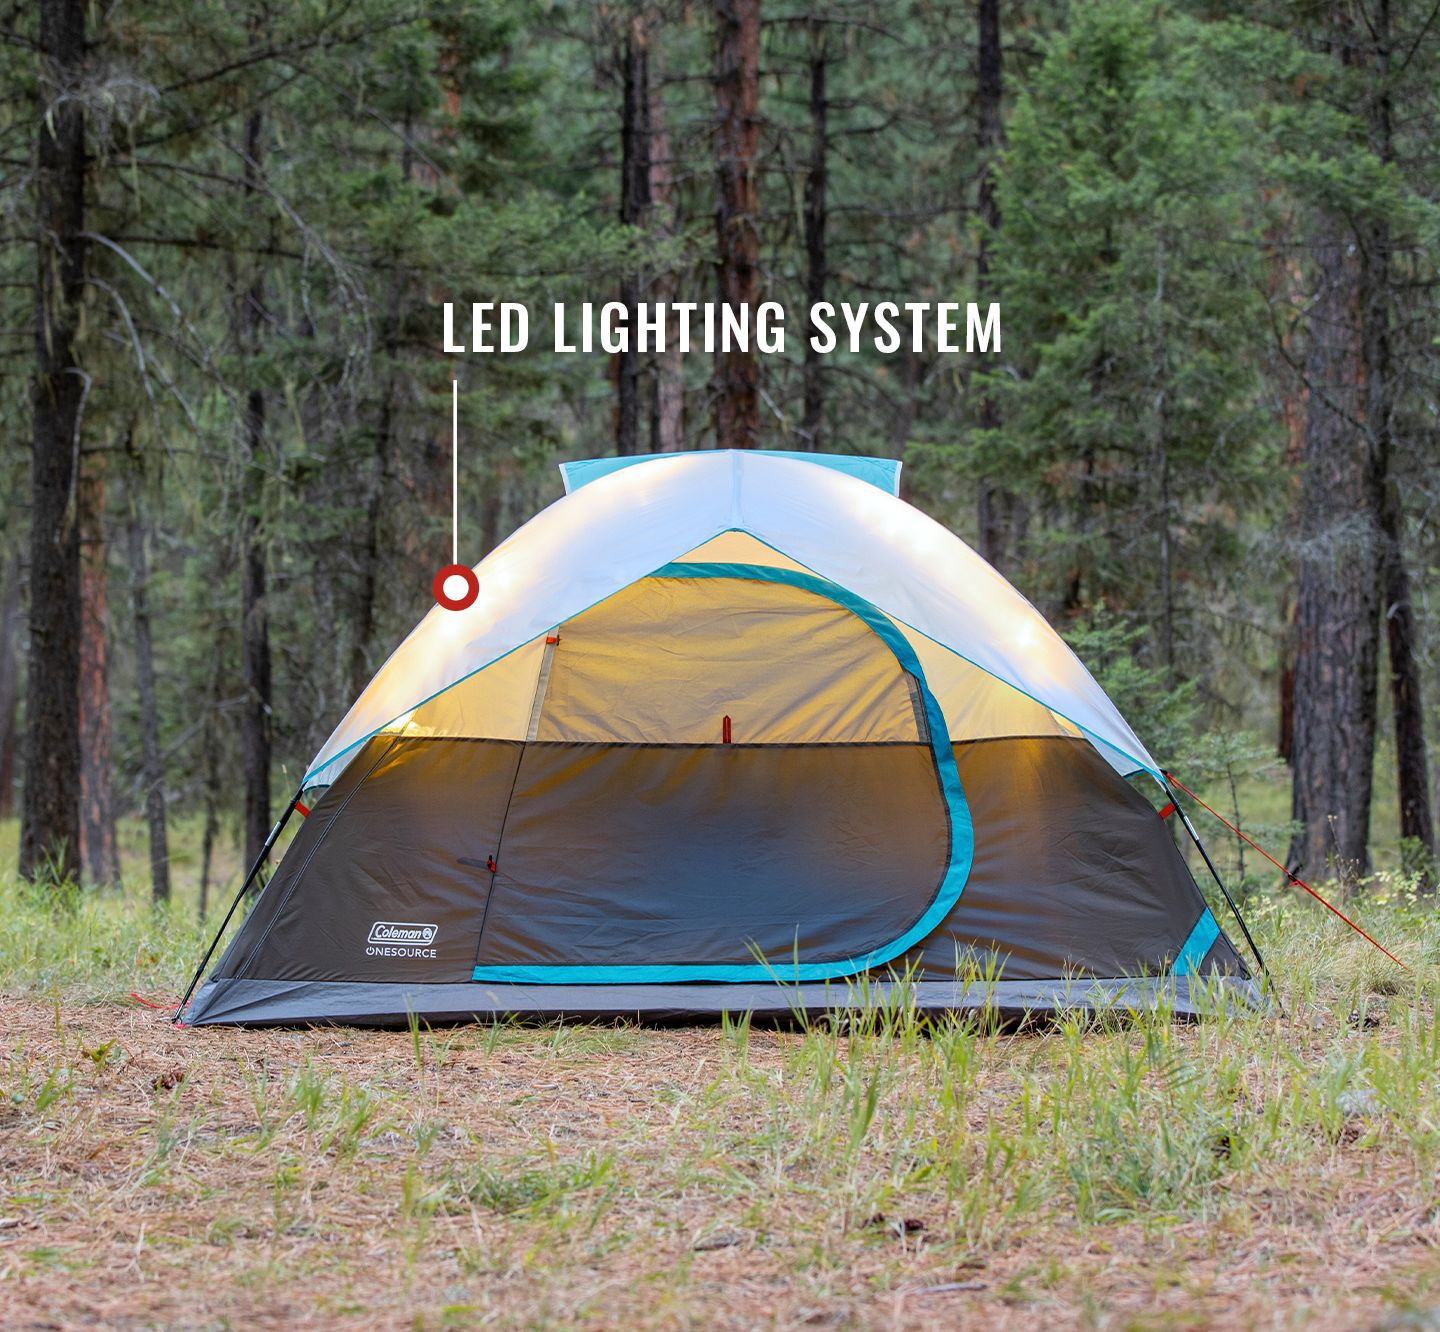 One source tent with LED lighting system